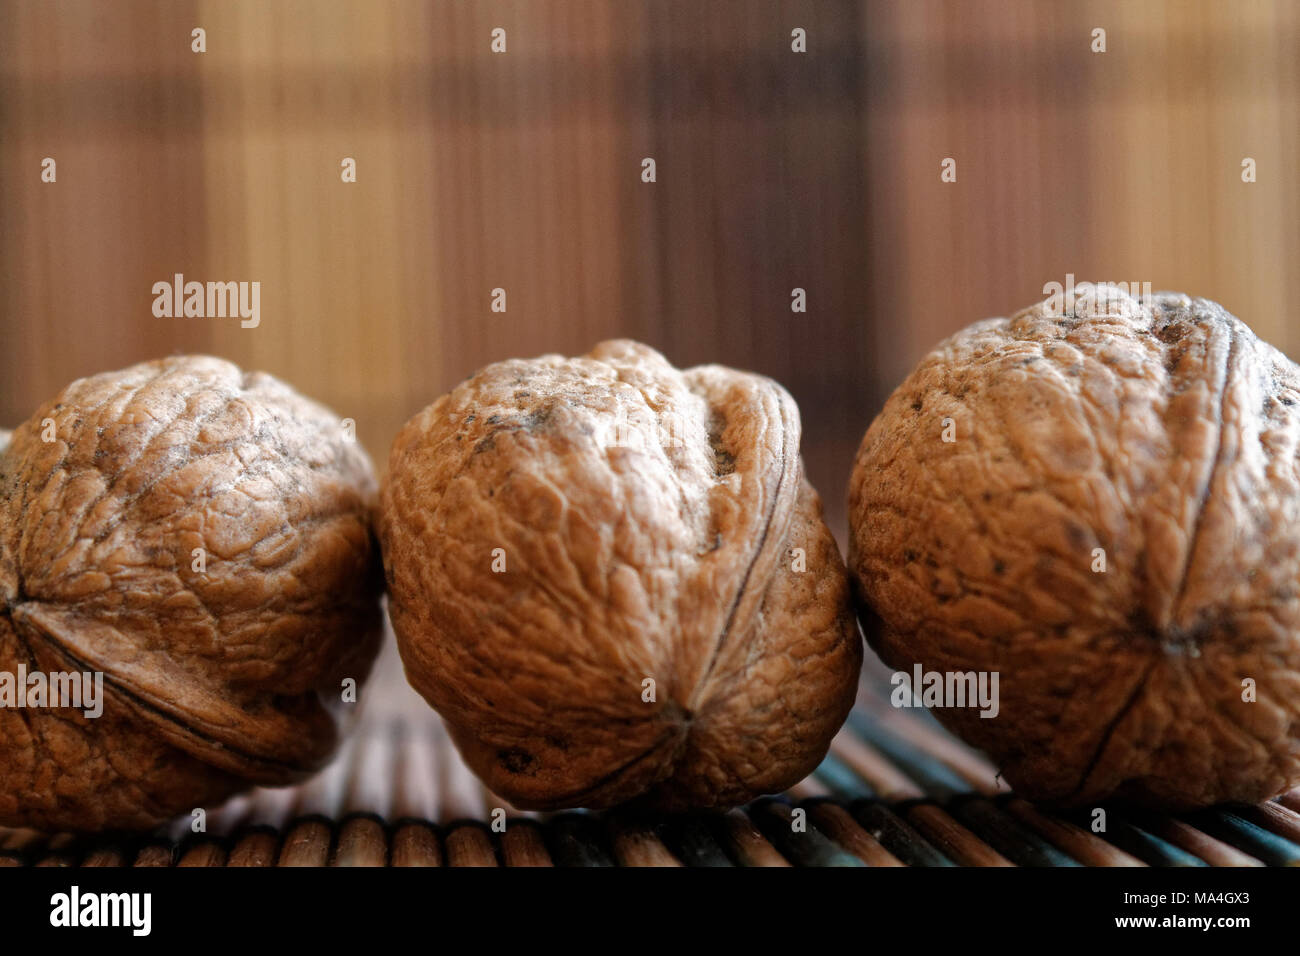 Three walnuts lie on a wooden bamboo table, background for web site or mobile devices. - Stock Image